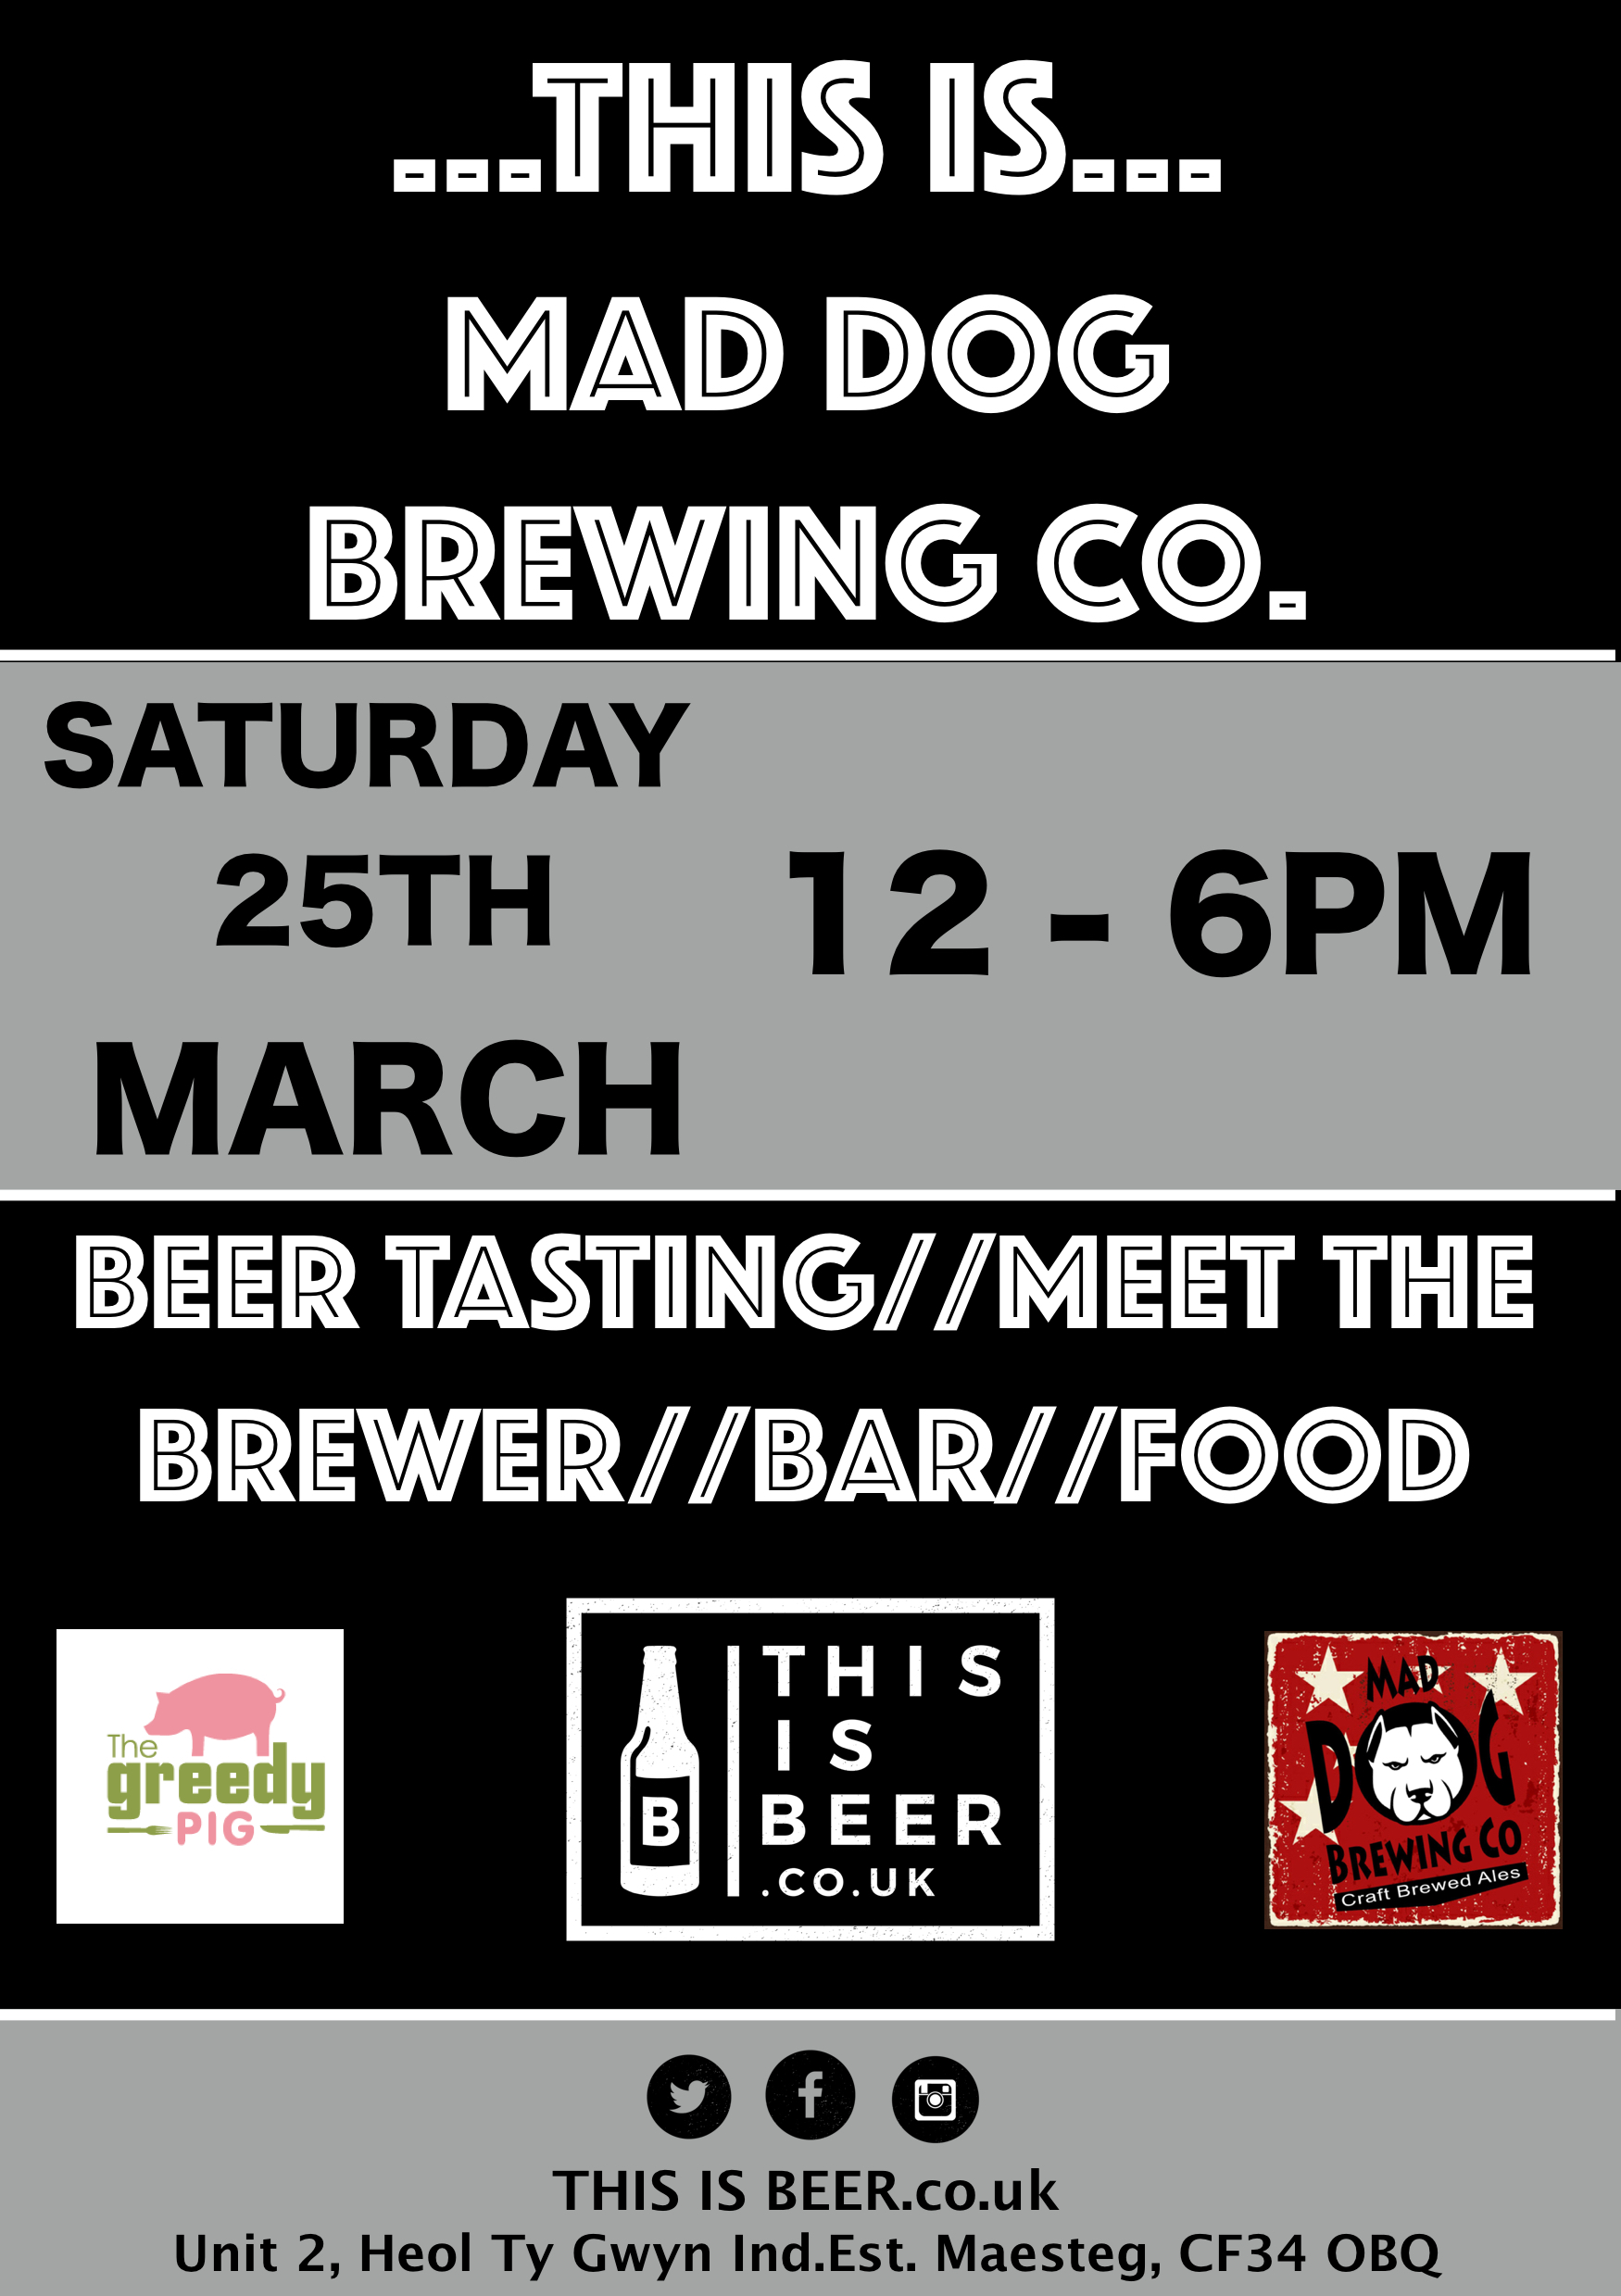 This Is Mad Dog Brewing Co